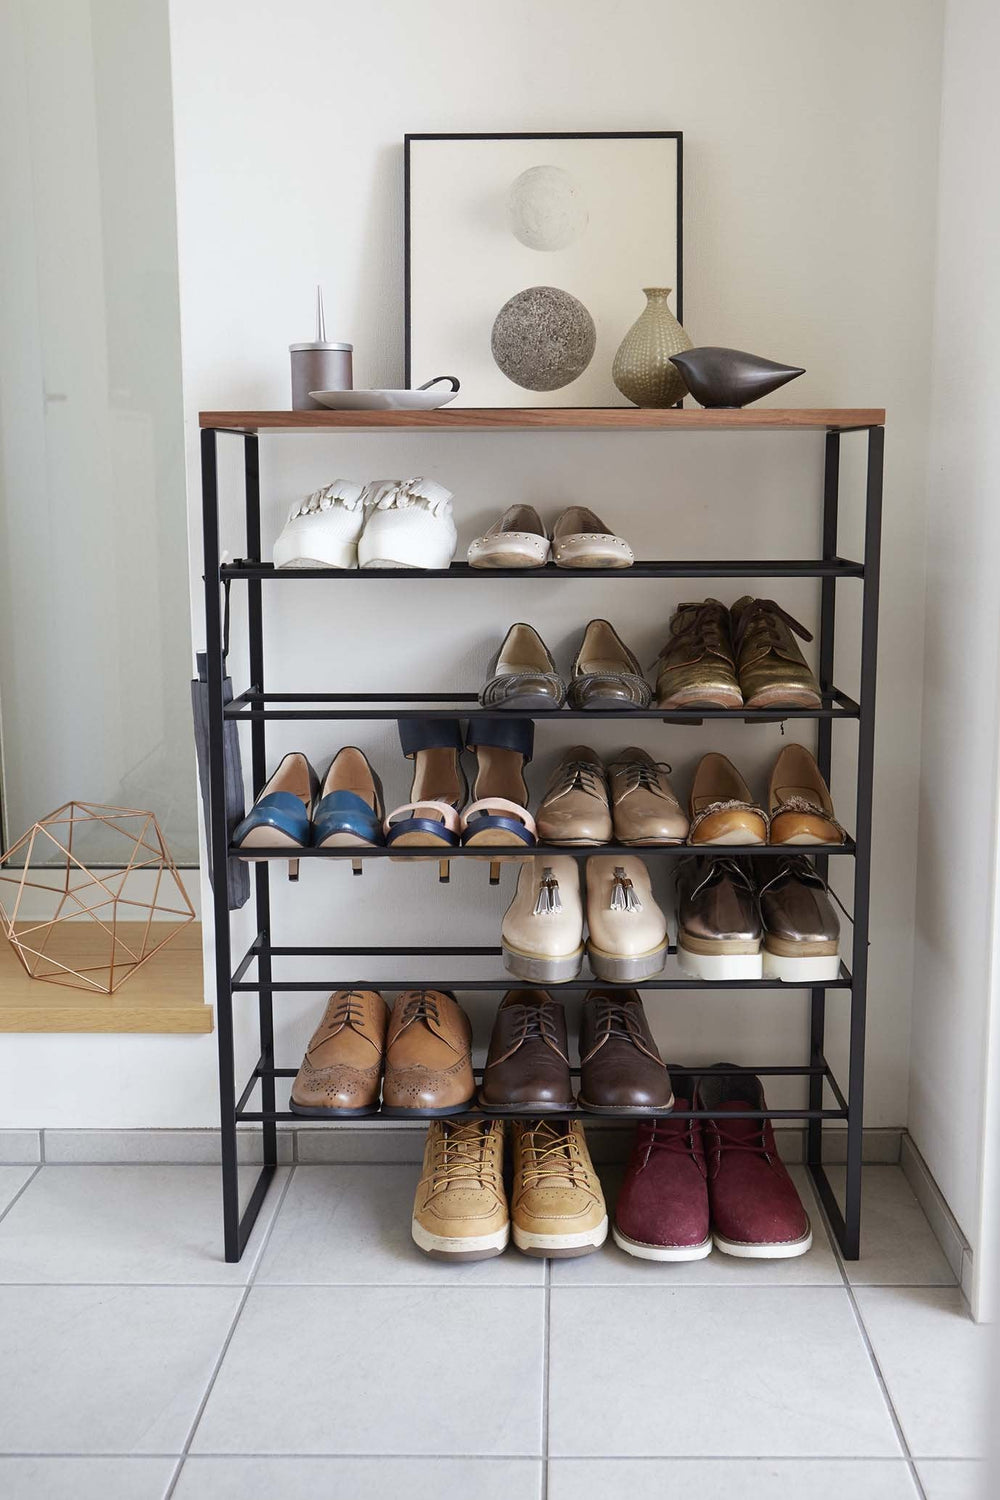 Straight-on view of Yamazaki's black 6 Tier Wood Top Shoe Rack filled with shoes and household items, sitting next to a doorway on a tile floor.